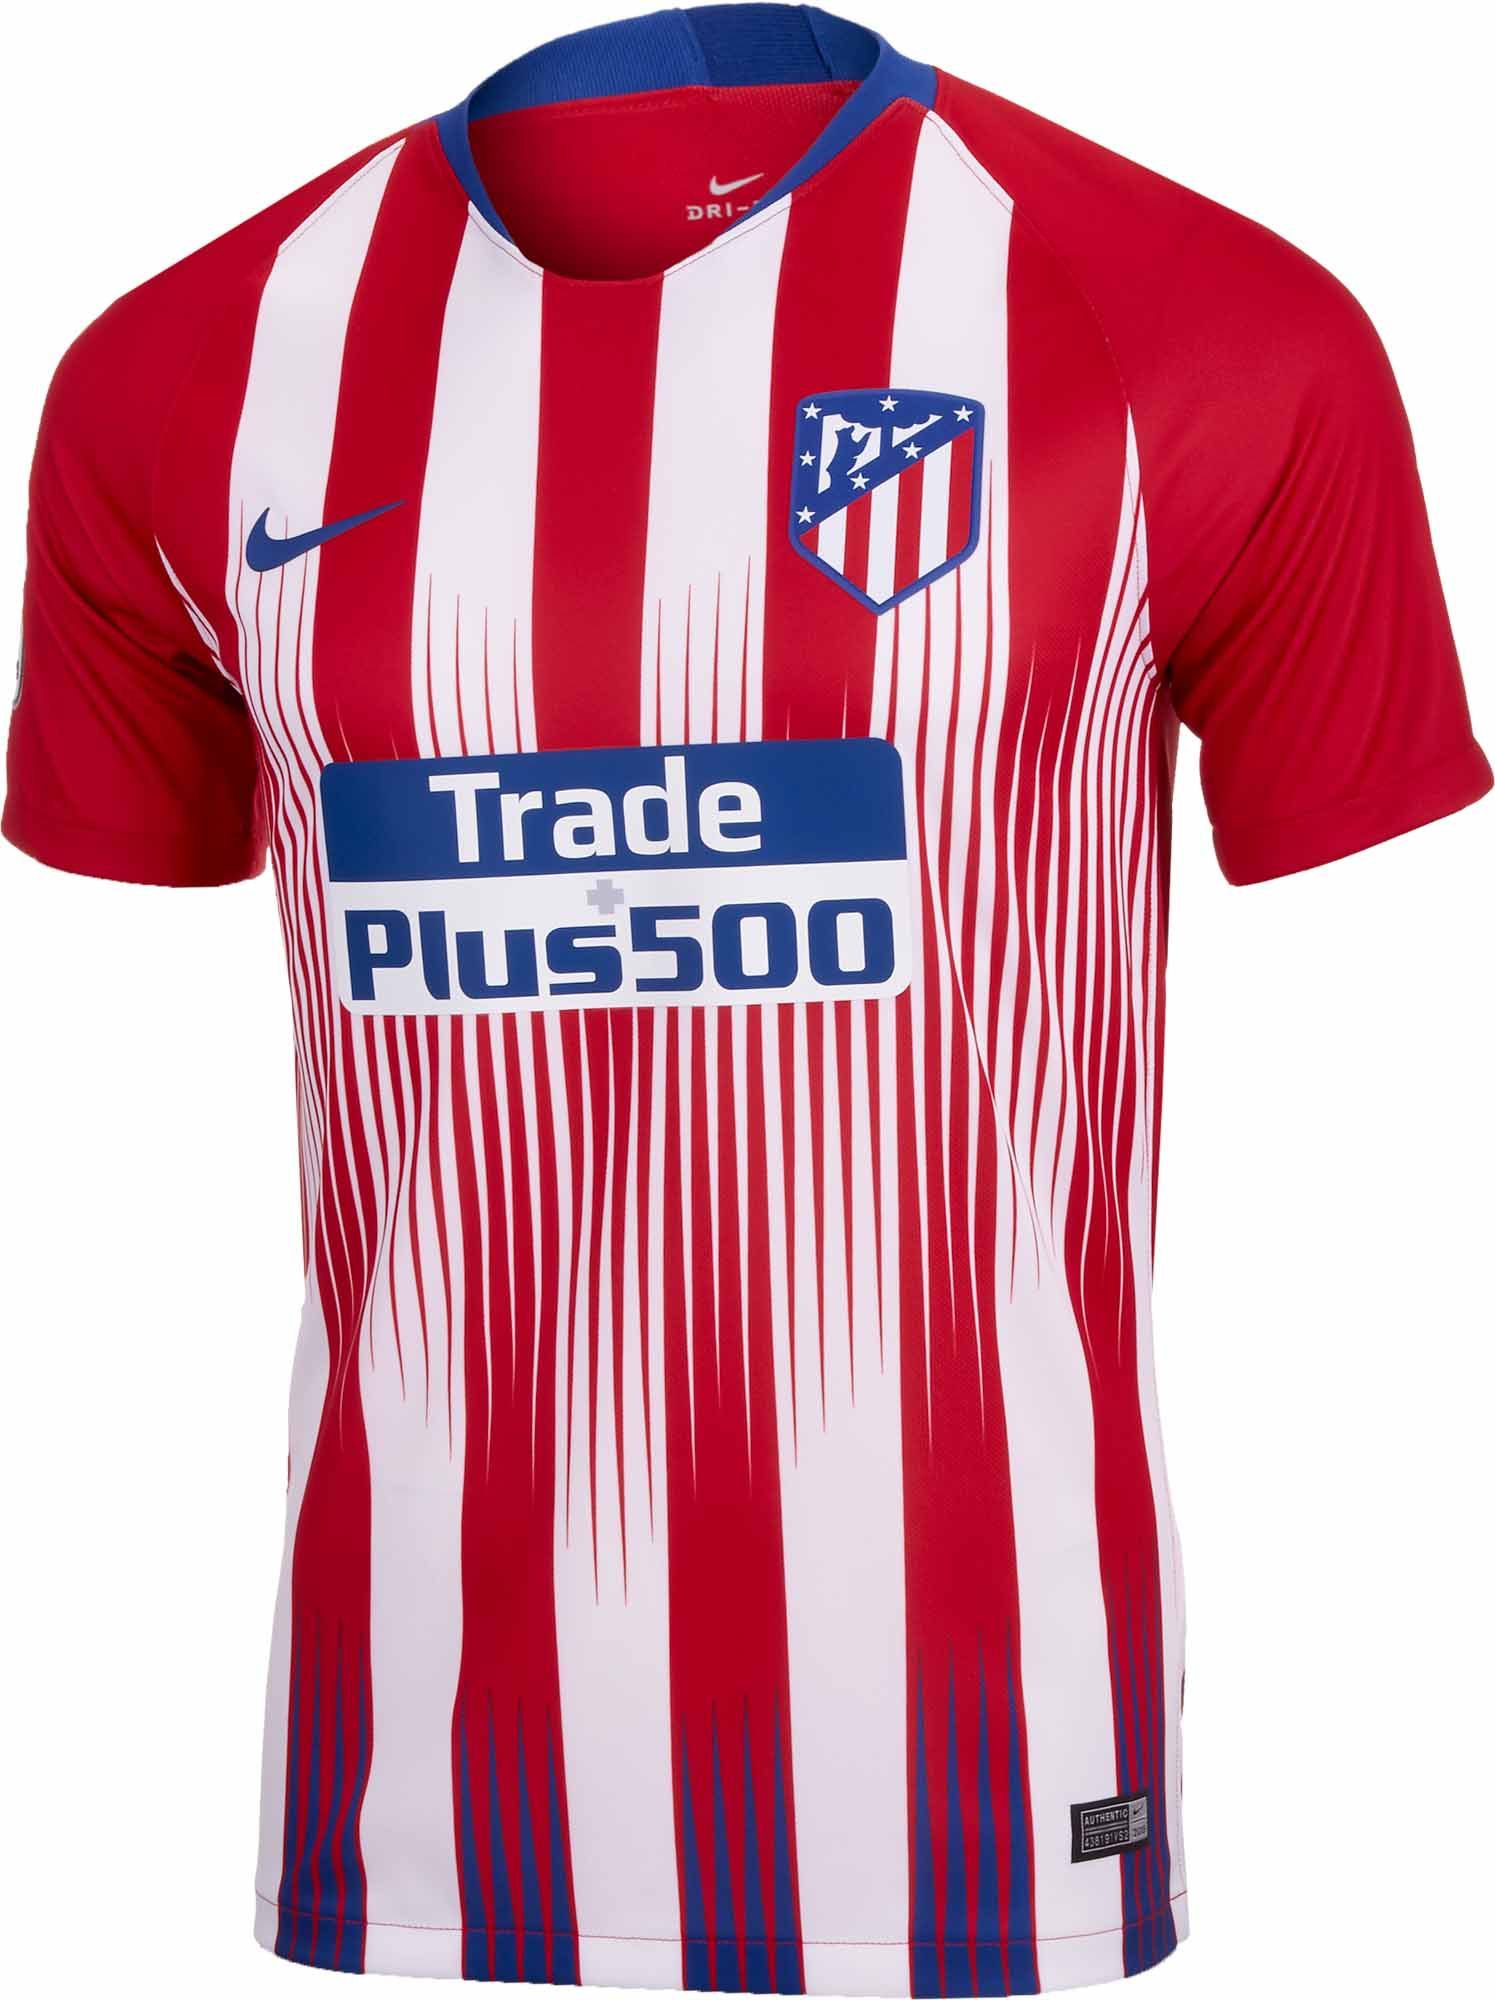 290c3cac7 Nike Atletico Madrid Home Jersey 2018-19 - Soccer Master